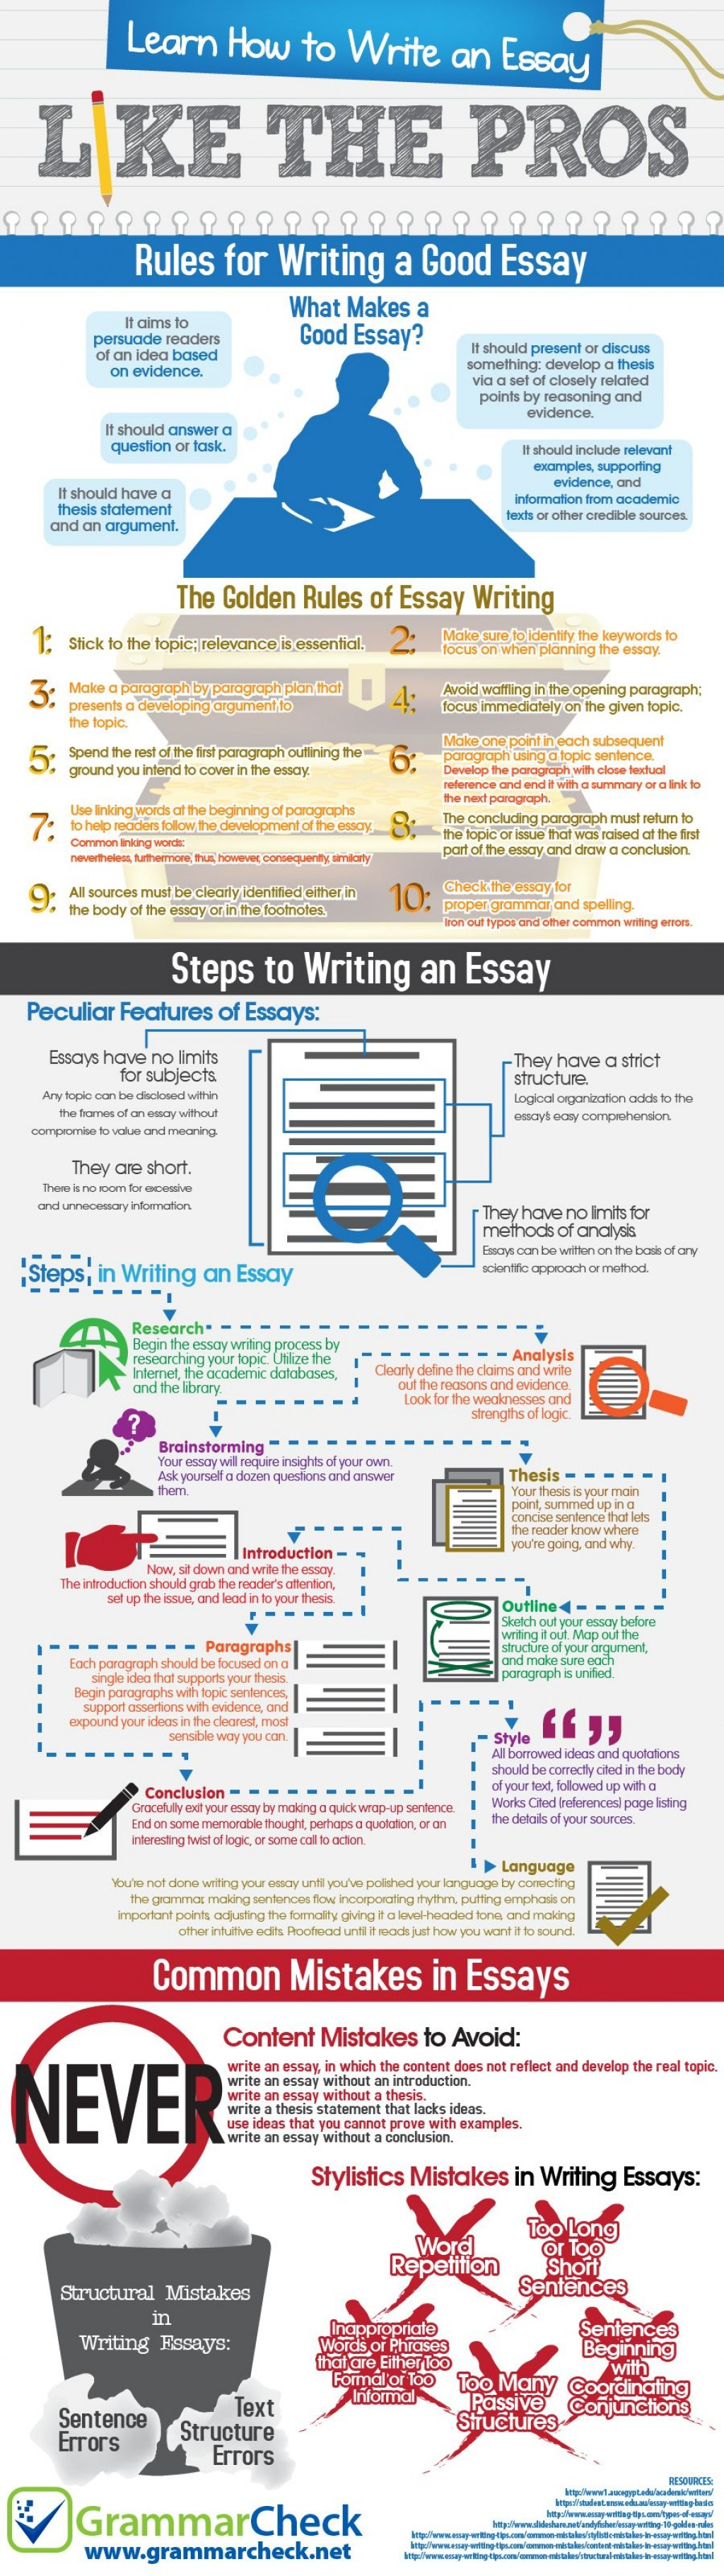 018 Write An Essay For Me Surprising Meaning In Gujarati Free My Online Large